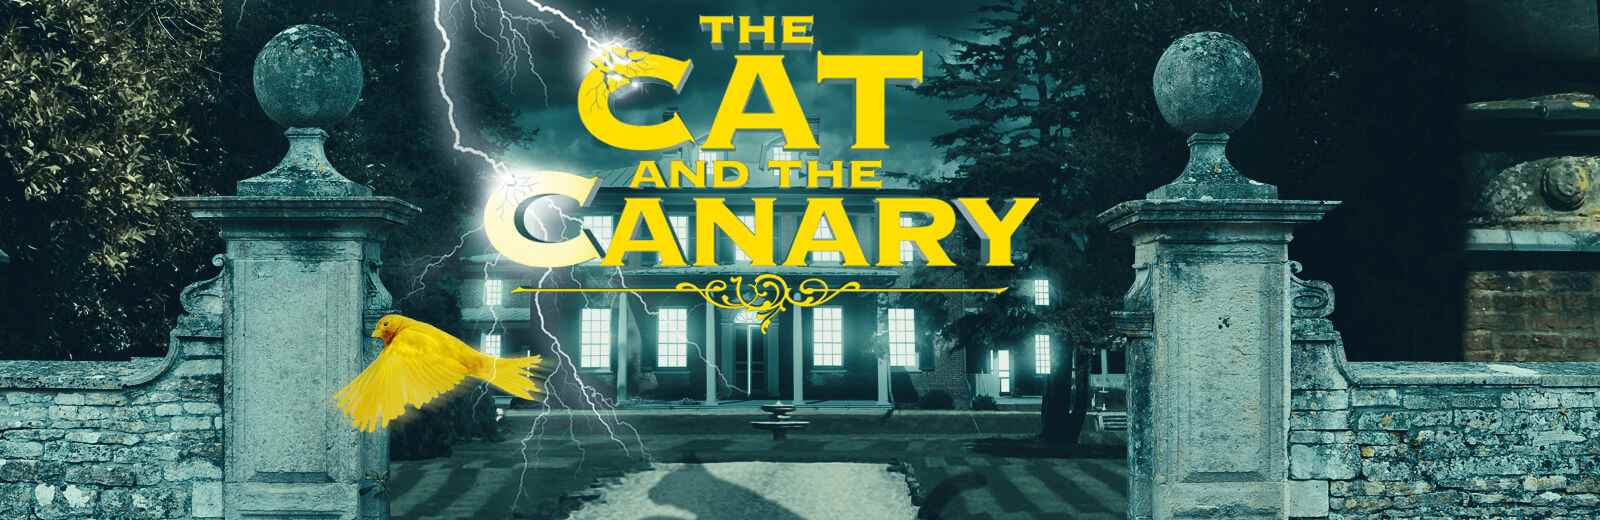 Touch tour for the visually impaired: The Cat and the Canary